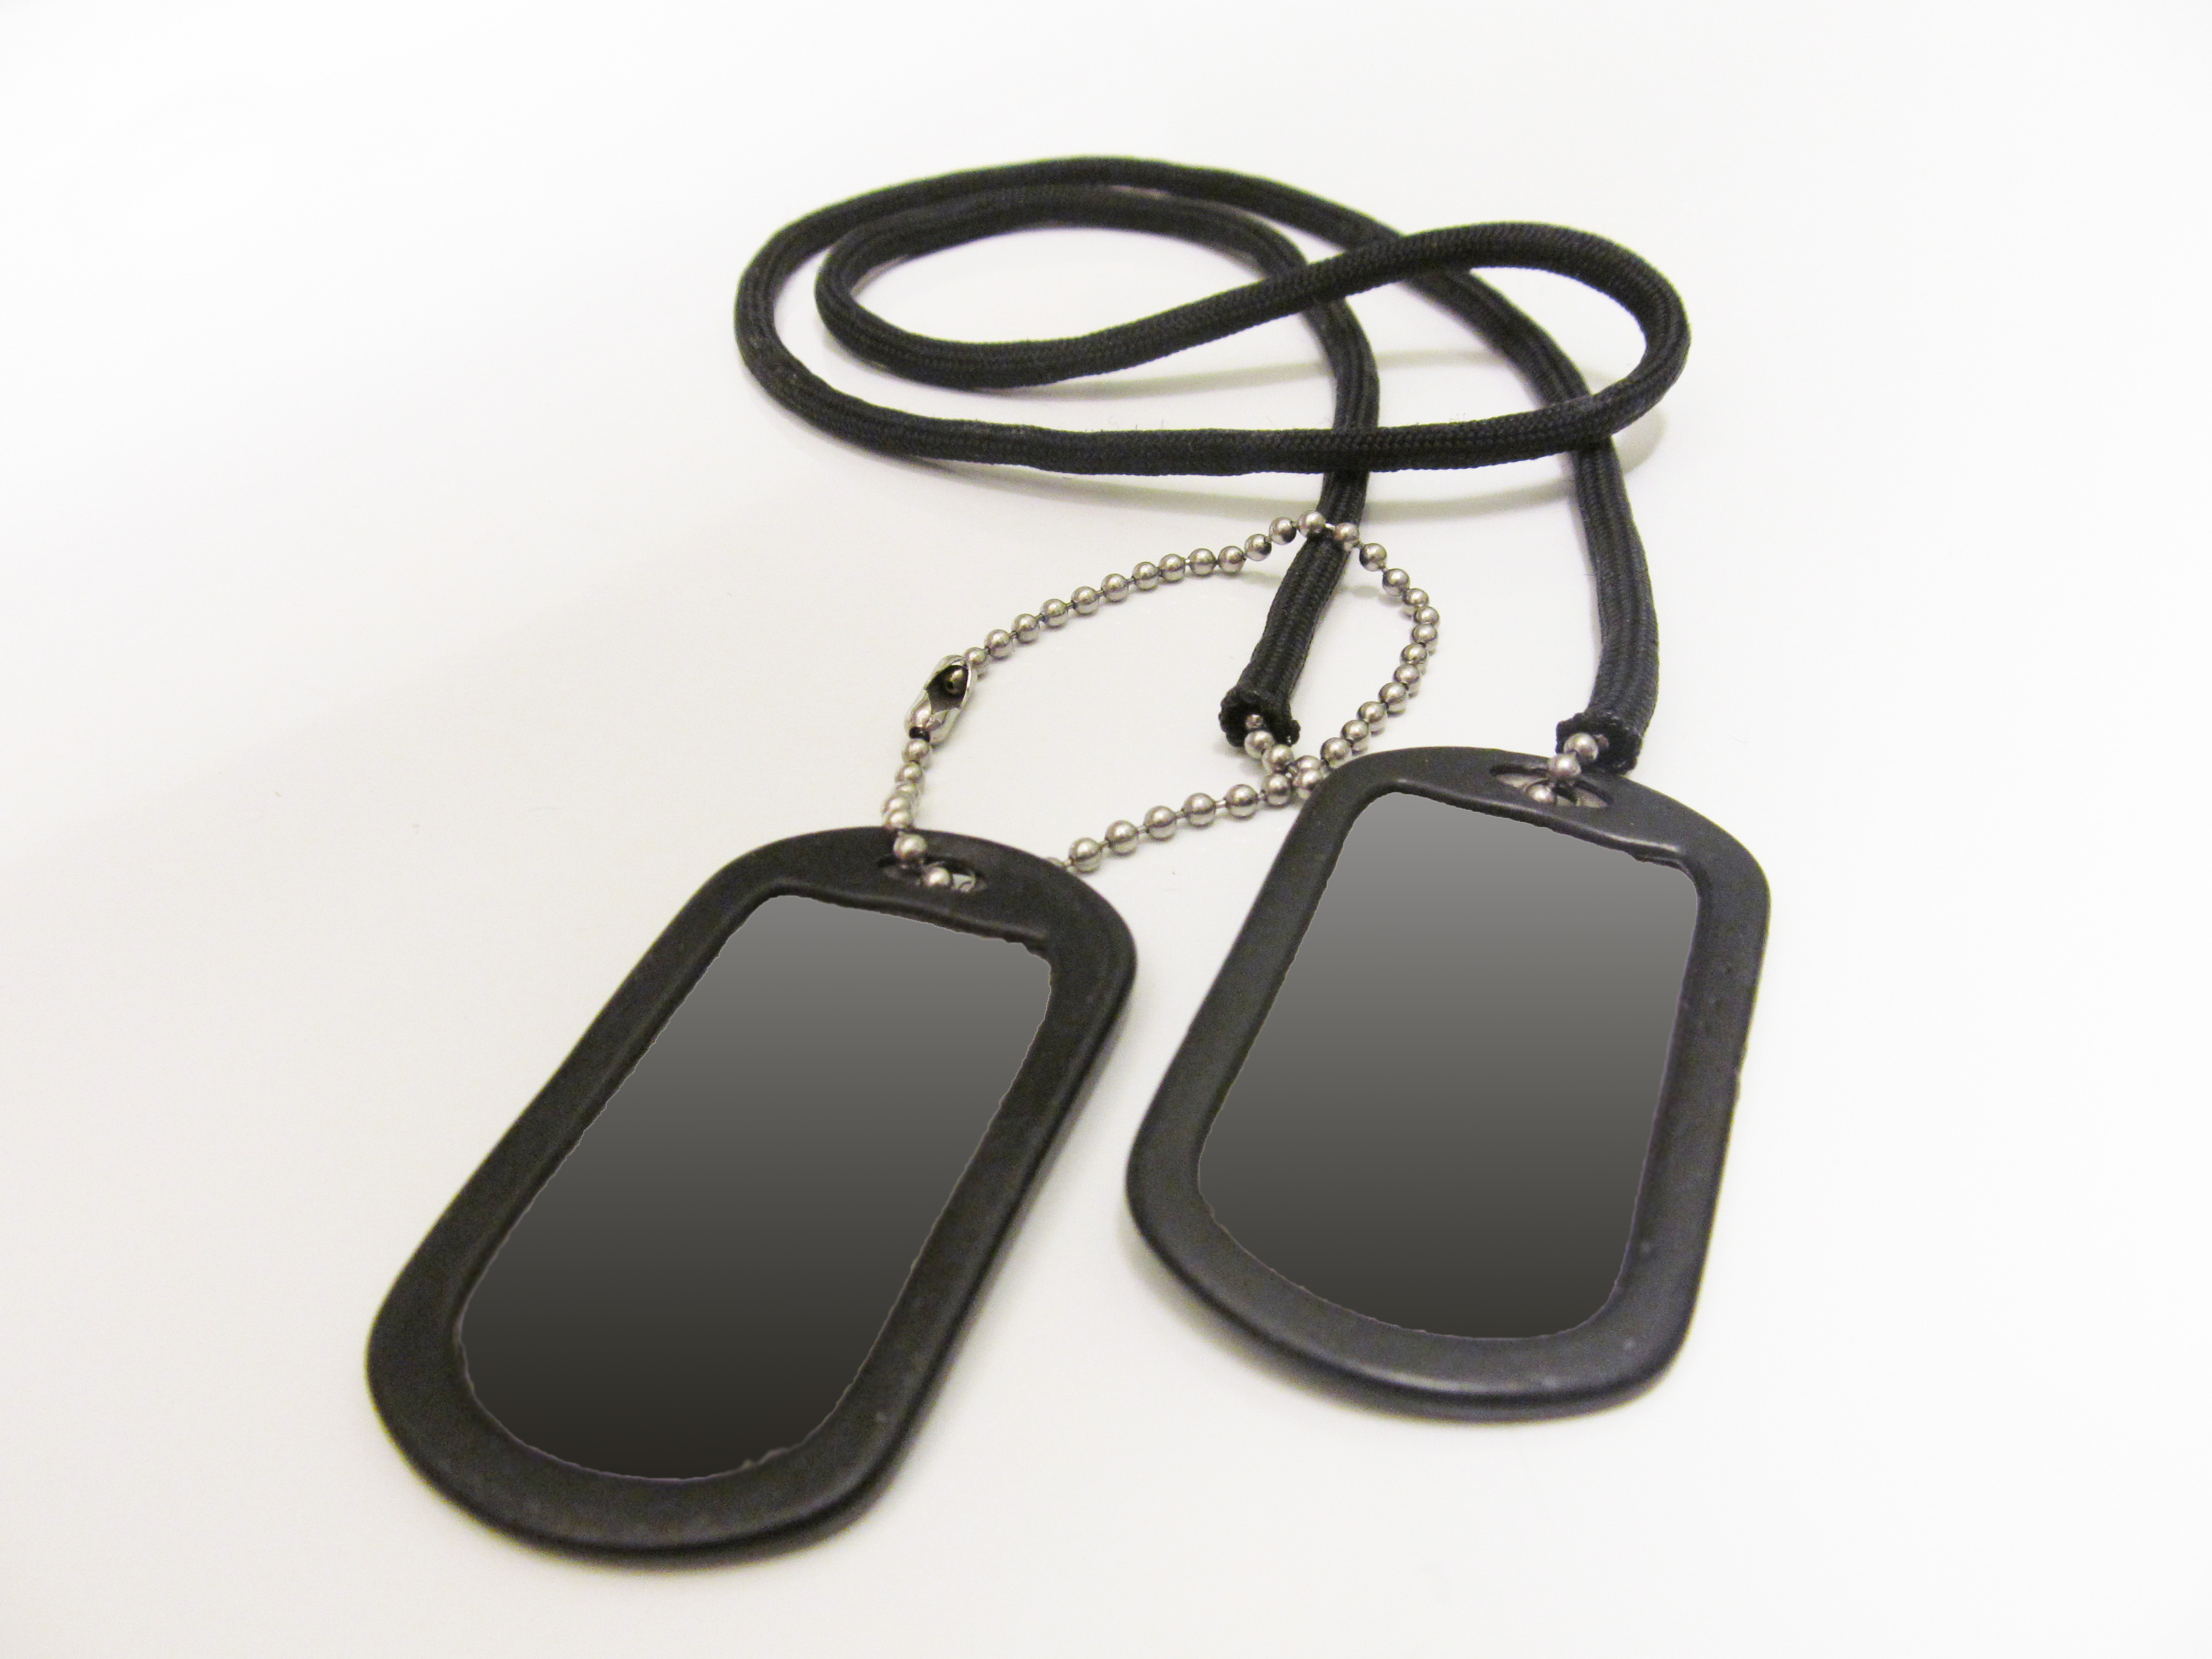 How to sheath dog tags with paracord.